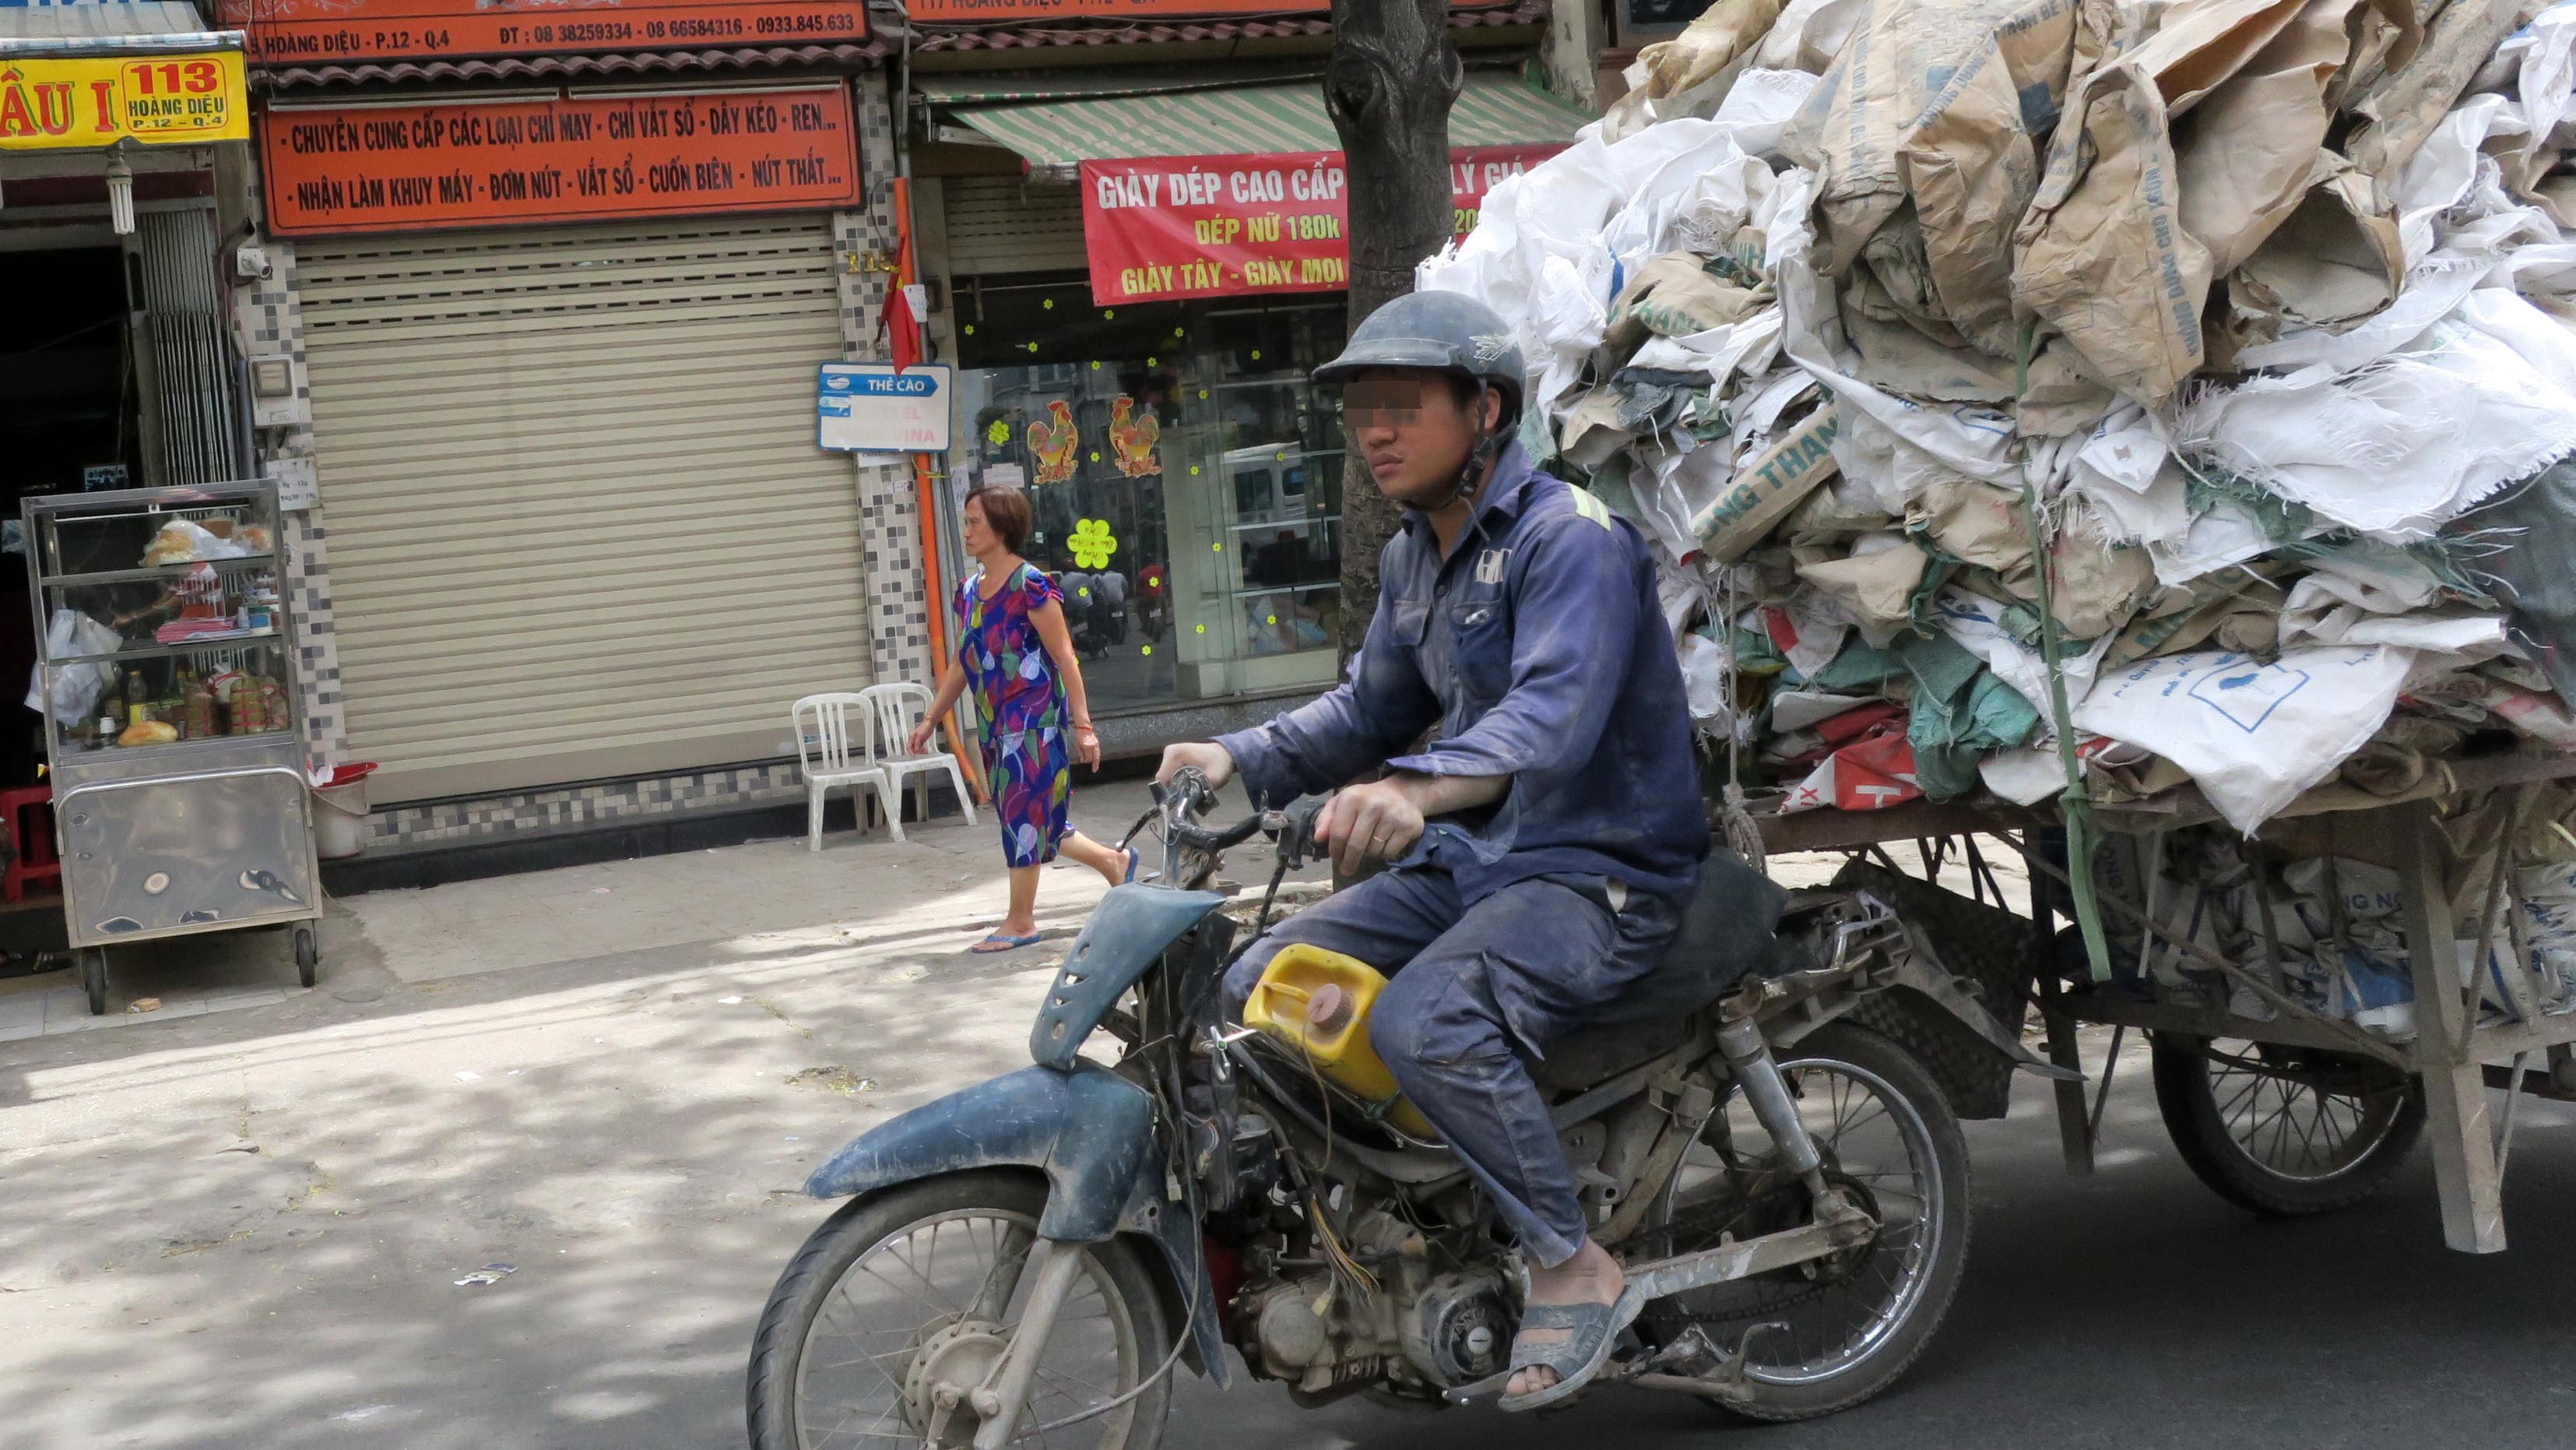 A man rides a ramshackle motorbike pulling bags on a cart as part of his daily job. Photo: Tuoi Tre